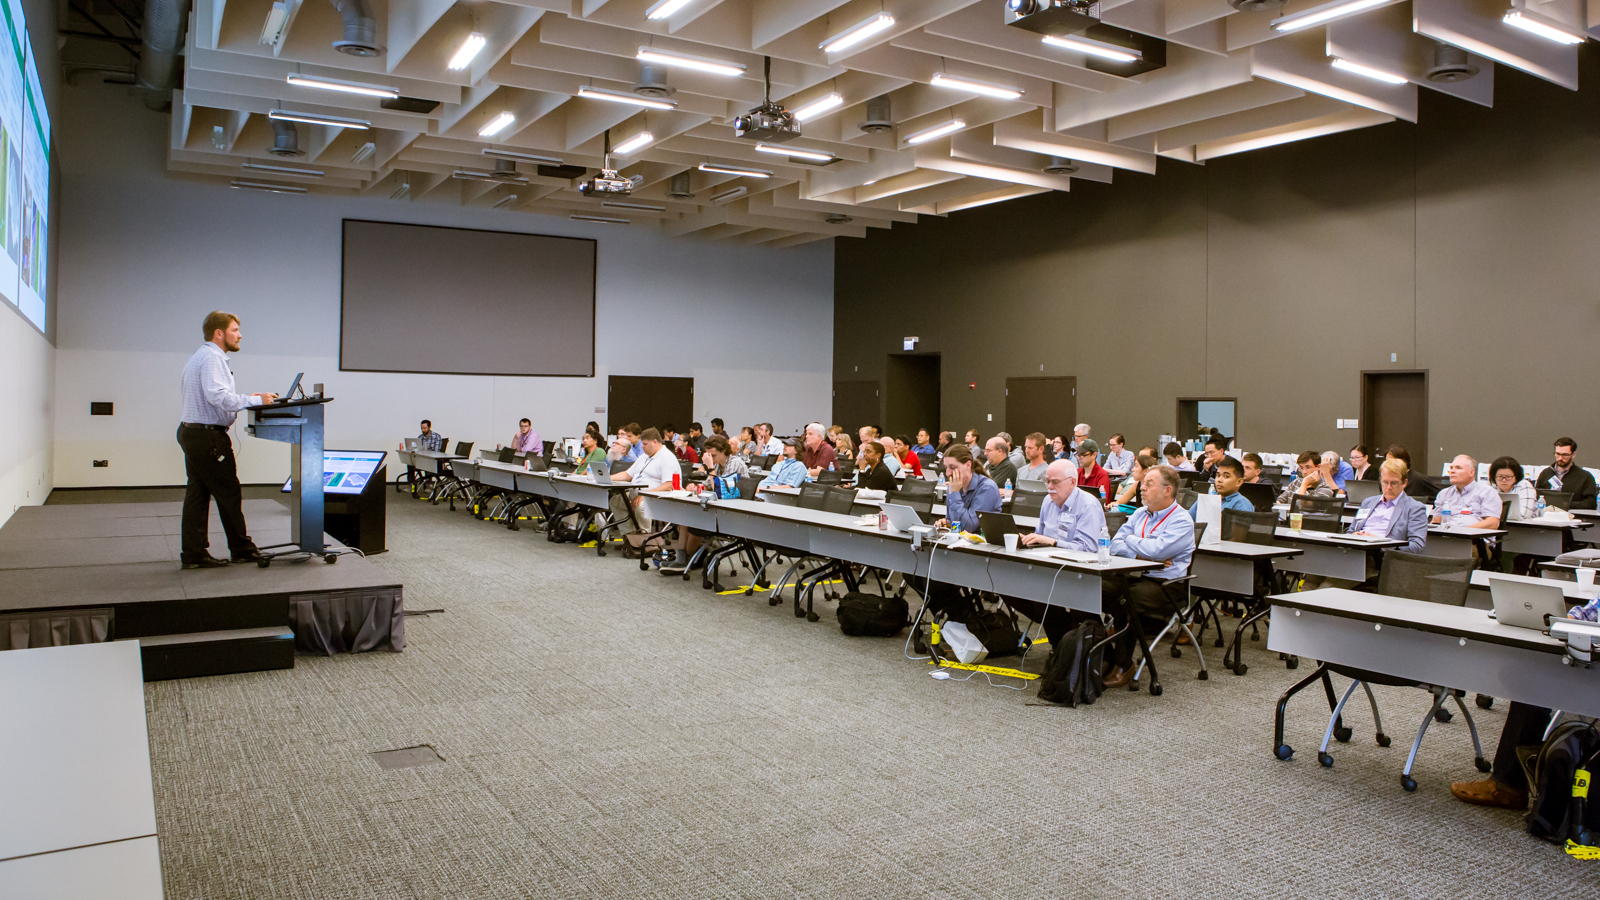 Attendees of Argonne's national Quantum Computing Workshop listen to wide-ranging presentations from leaders in industry, academia and national laboratories. The three-day event, both educative and interactive, included hands-on sessions that trained attendees on how to work with quantum simulators. (Image by Argonne National Laboratory.)